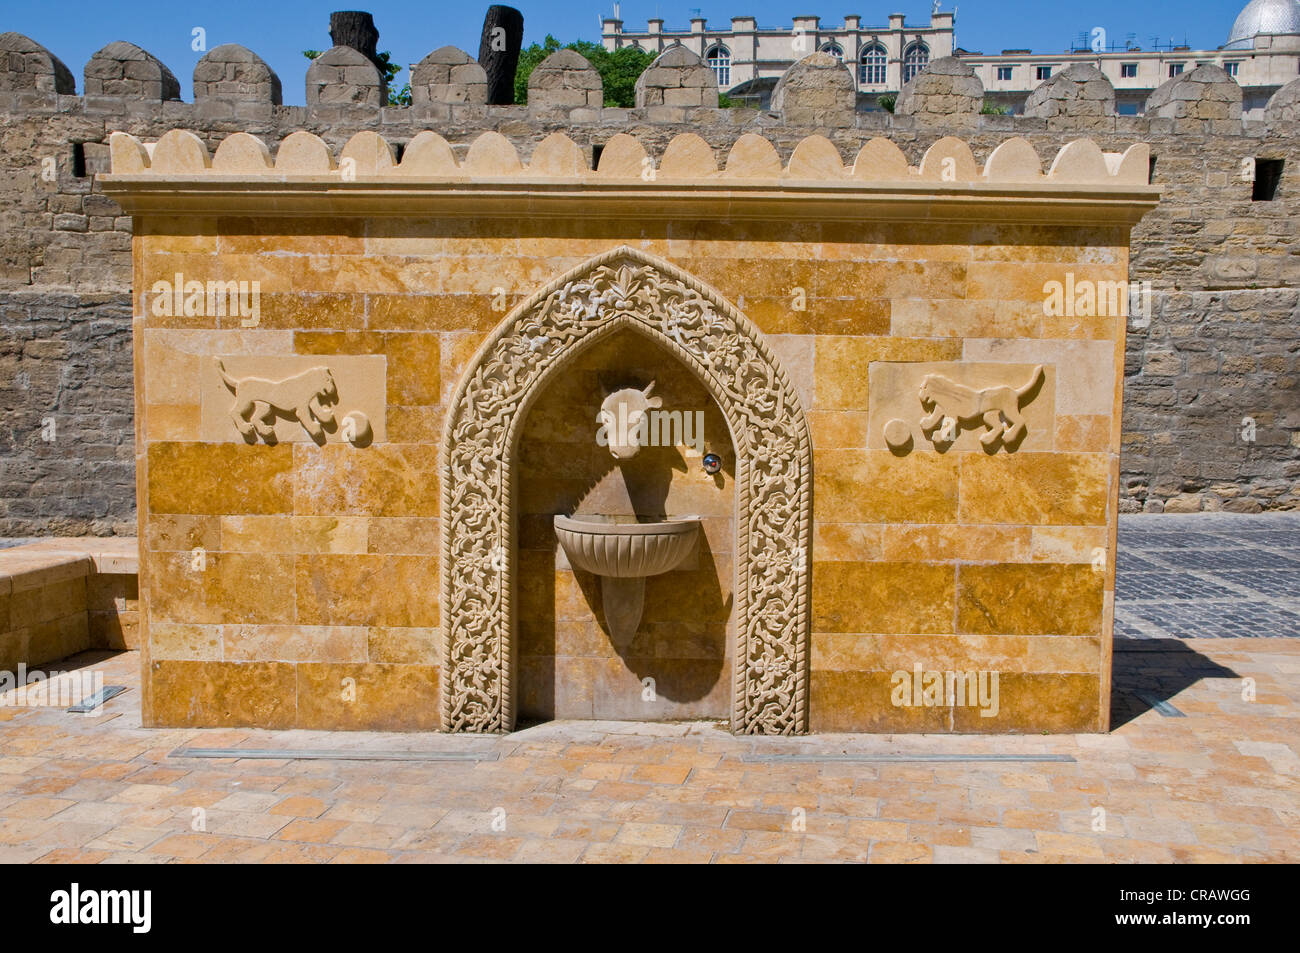 Fountain in the old town, UNESCO World Heritage Site, Baku, Azerbaijan, Caucasus, Middle East - Stock Image